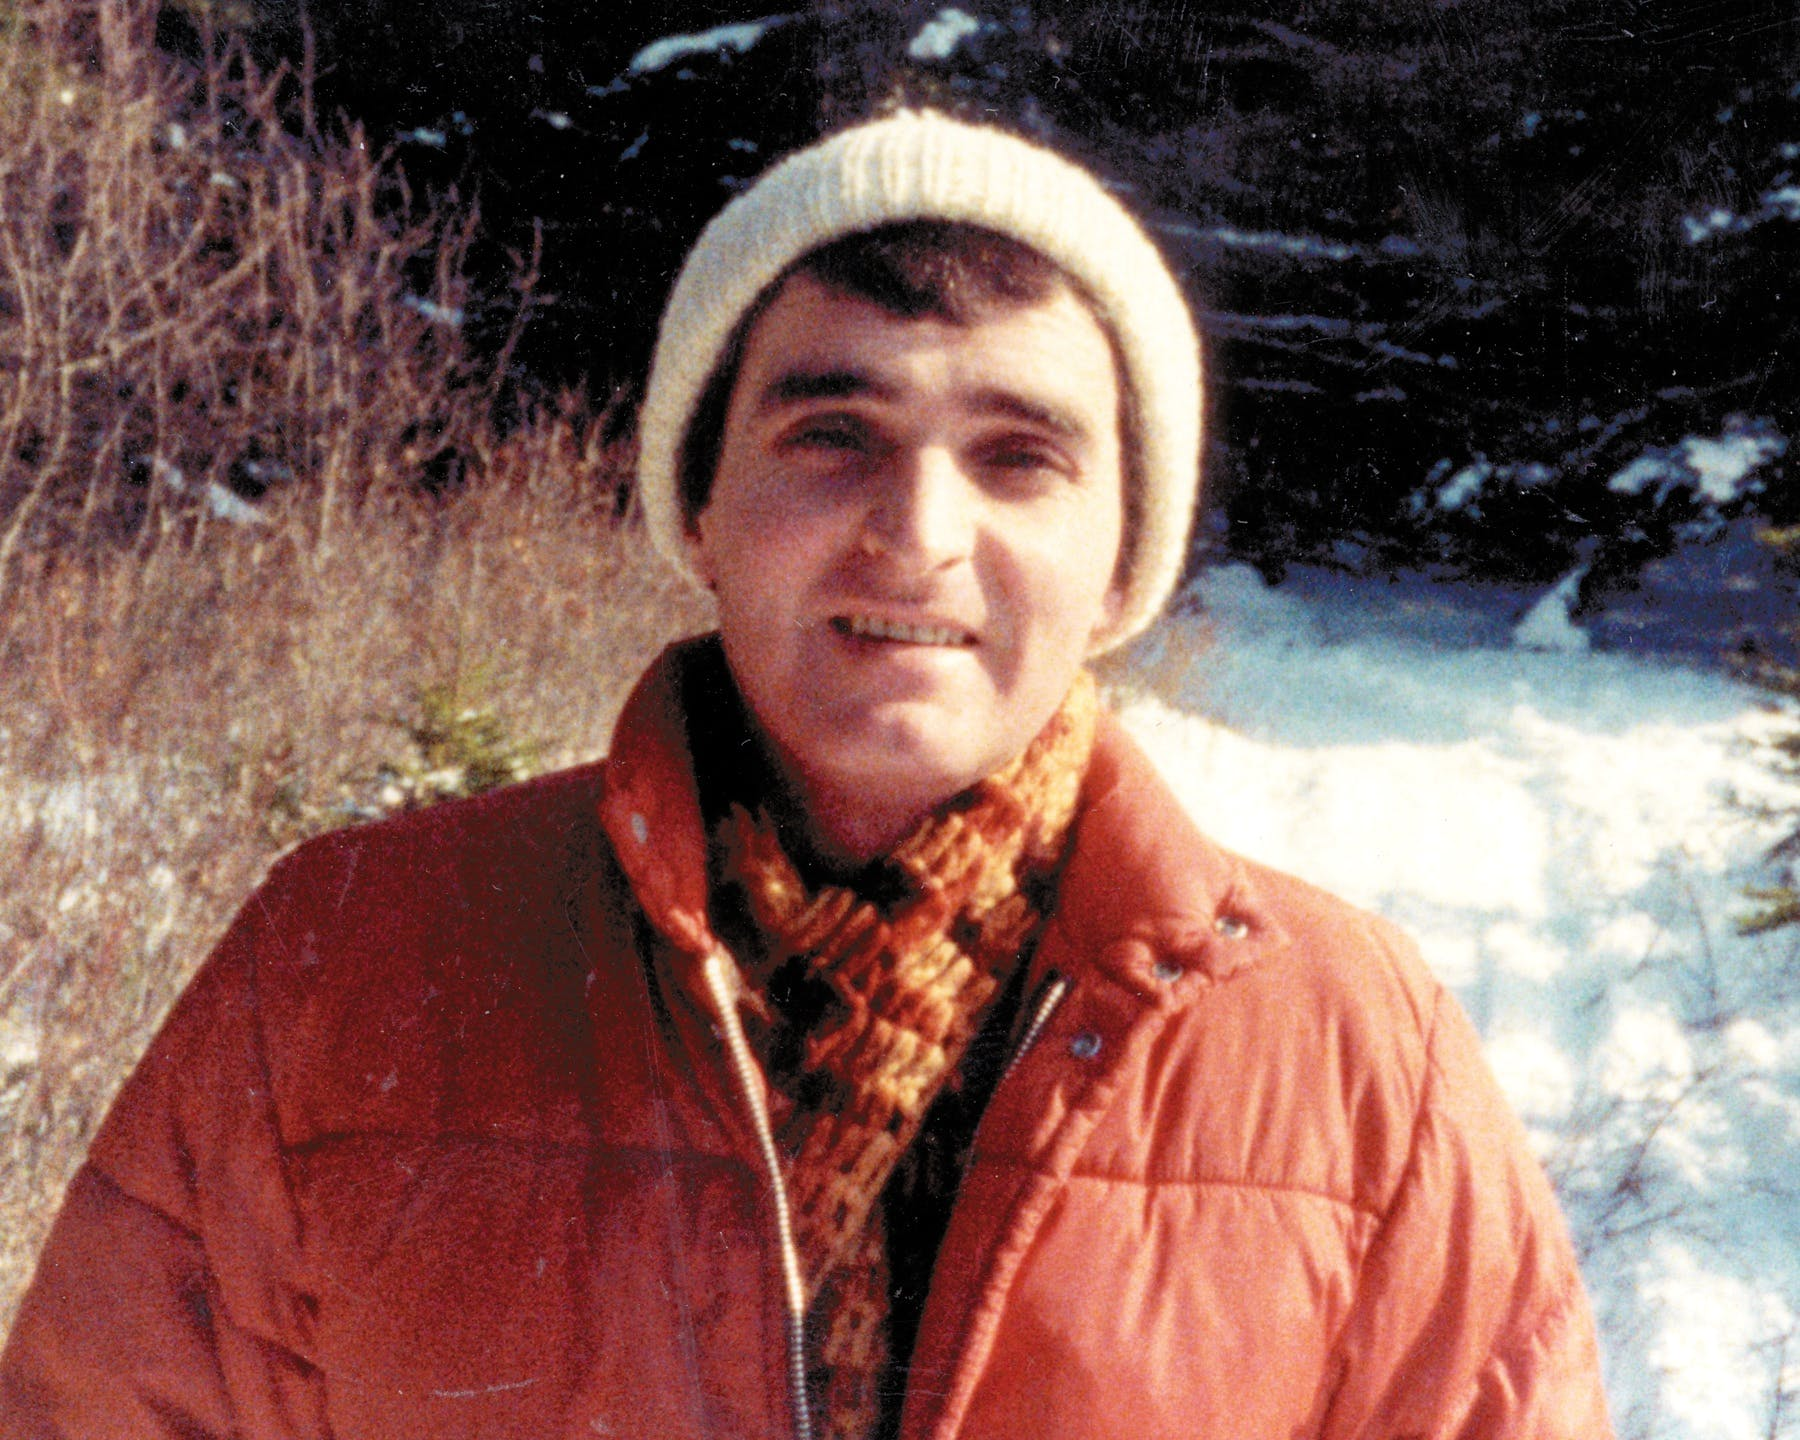 Byron Carr was murdered in his Charlottetown home on Nov. 11, 1988. Police believe two people were involved and are making a new plea for possible new information.